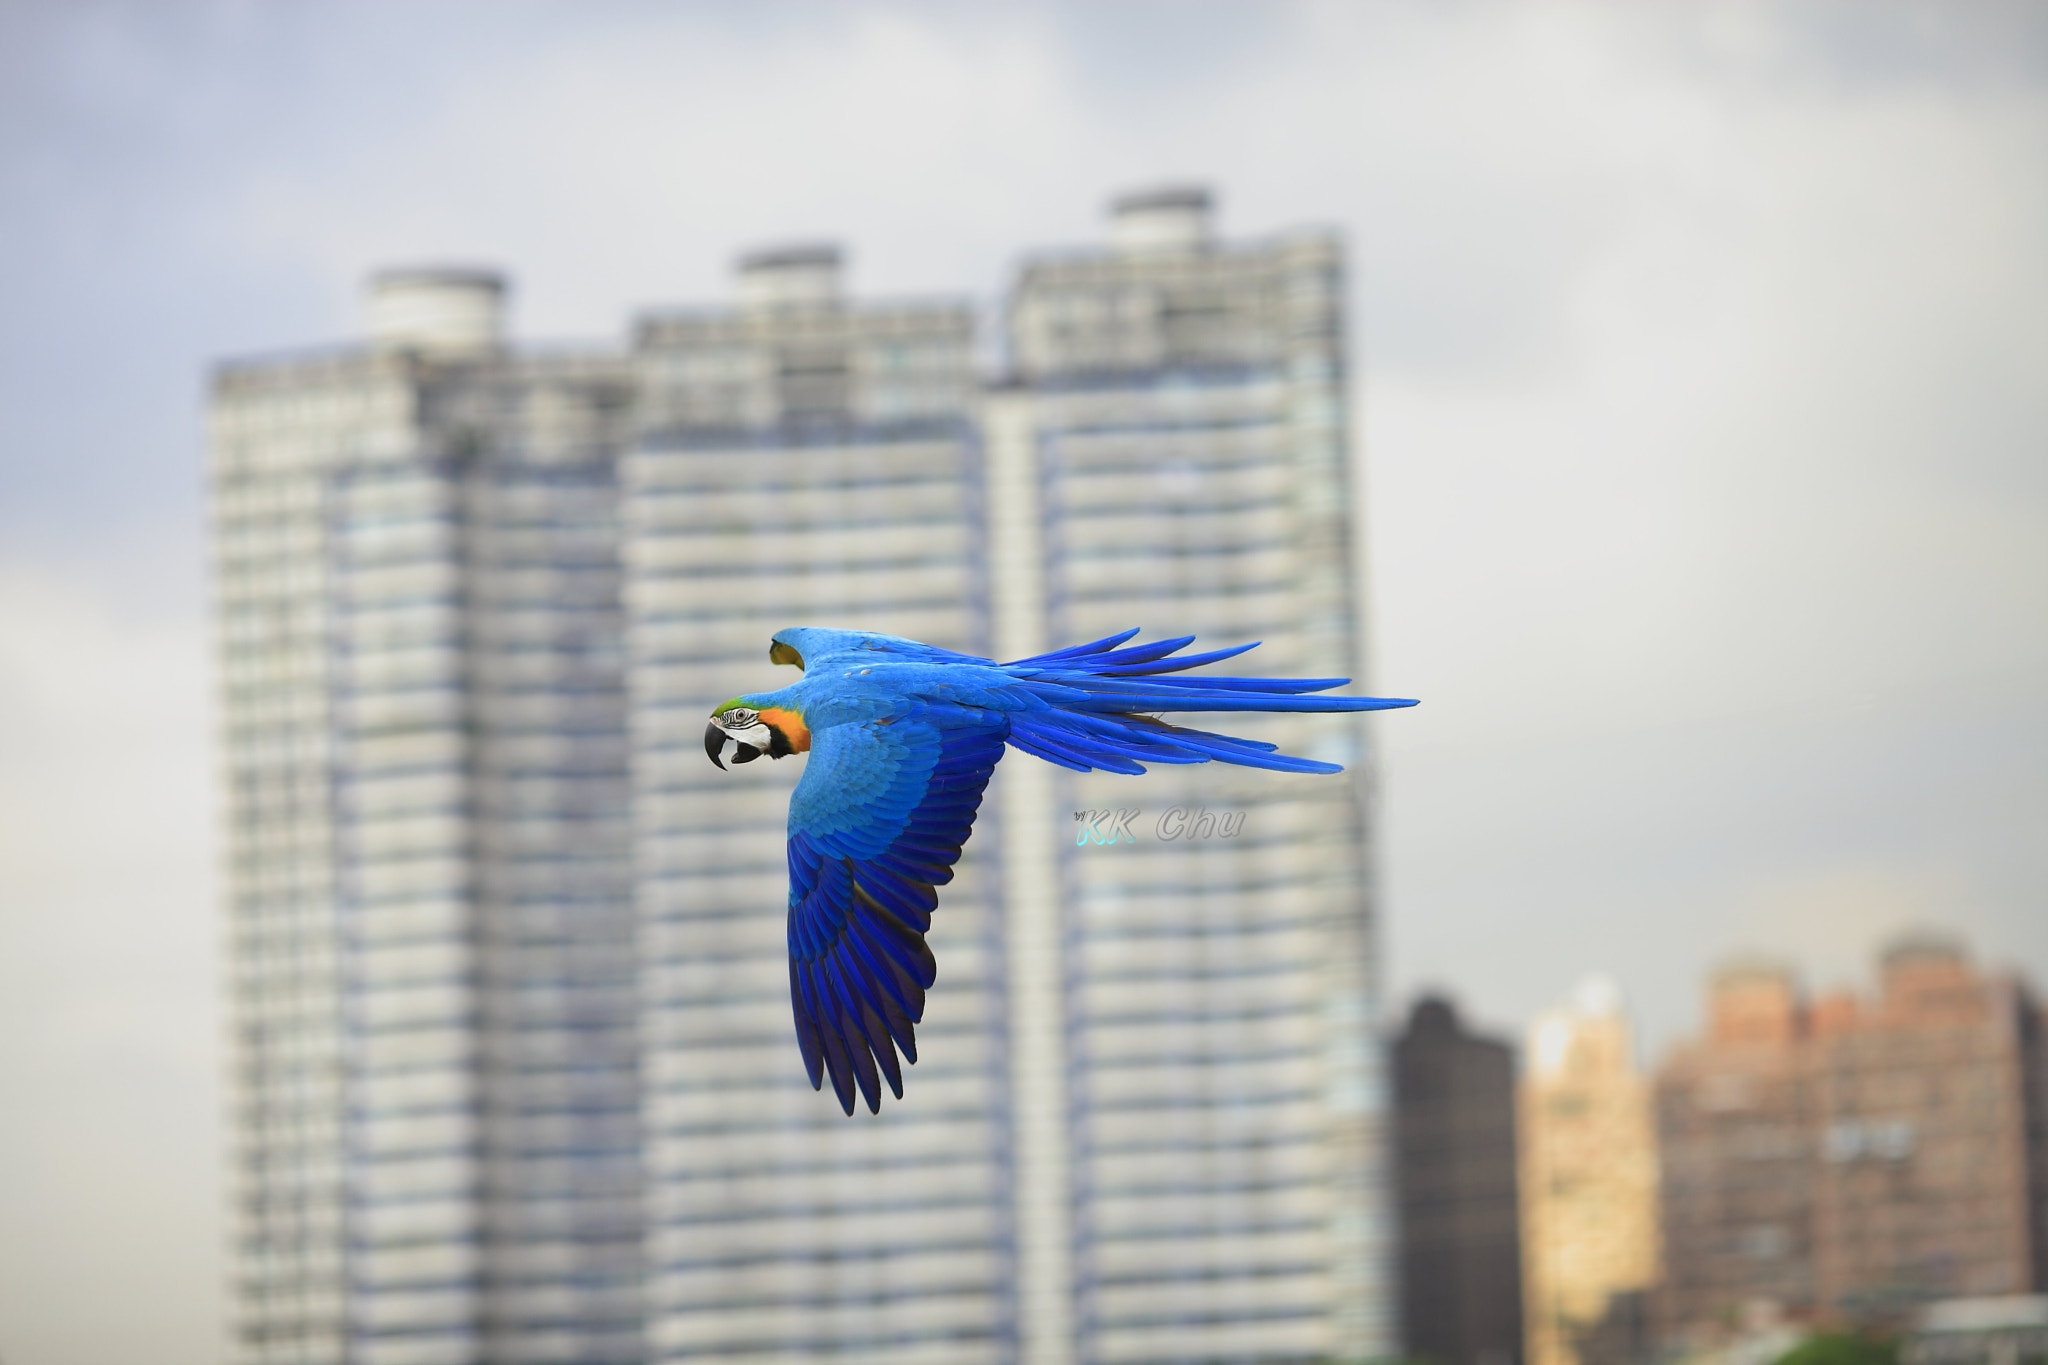 Photograph FLY Blue and Gold Macaw by KK CHU on 500px